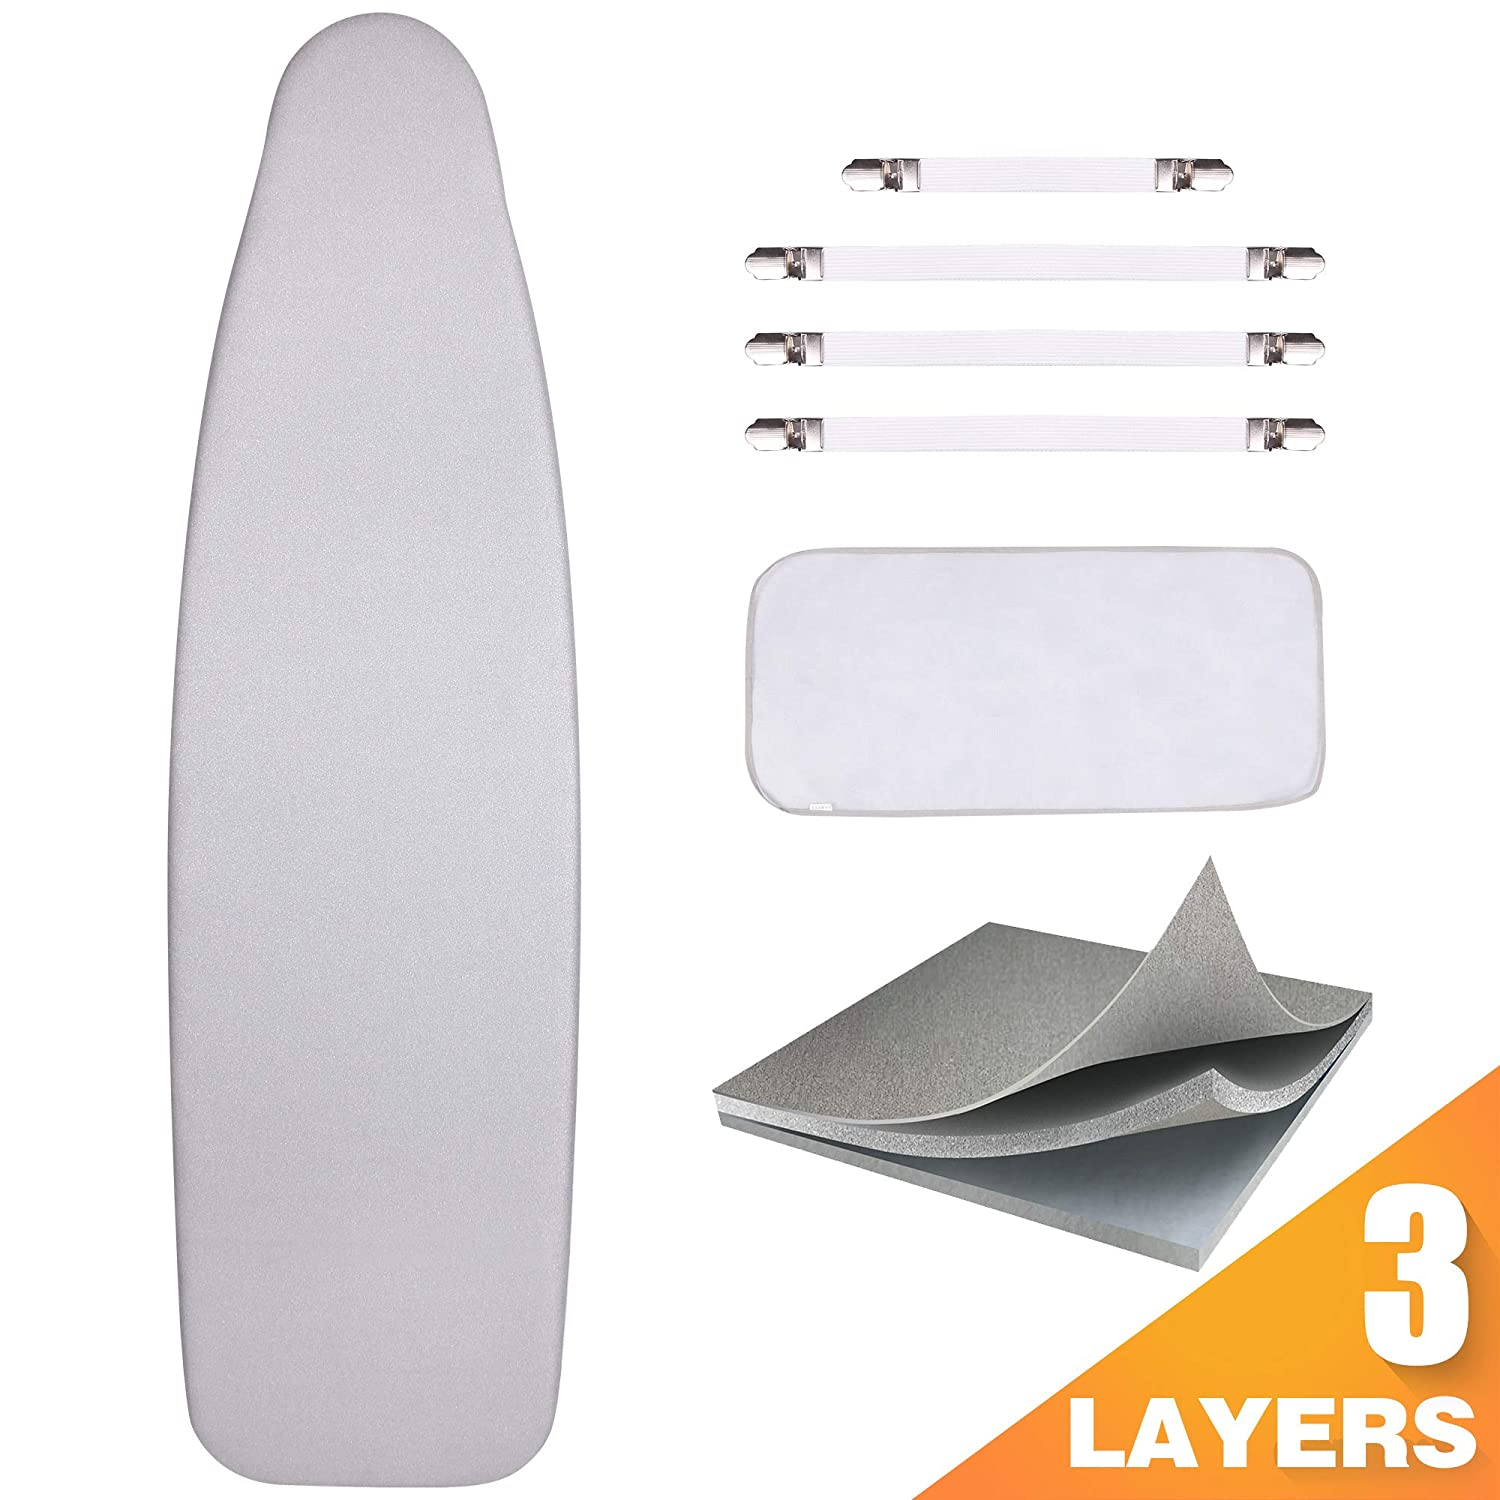 "Sunkloof Silicone Coating Ironing Board Cover and Pad Resists Scorching and Staining Ironing Board Cover with Elasticized Edges and Pad 15""x54"" 4 Fasteners and 1 Large Protective Scorch Mesh Cloth"